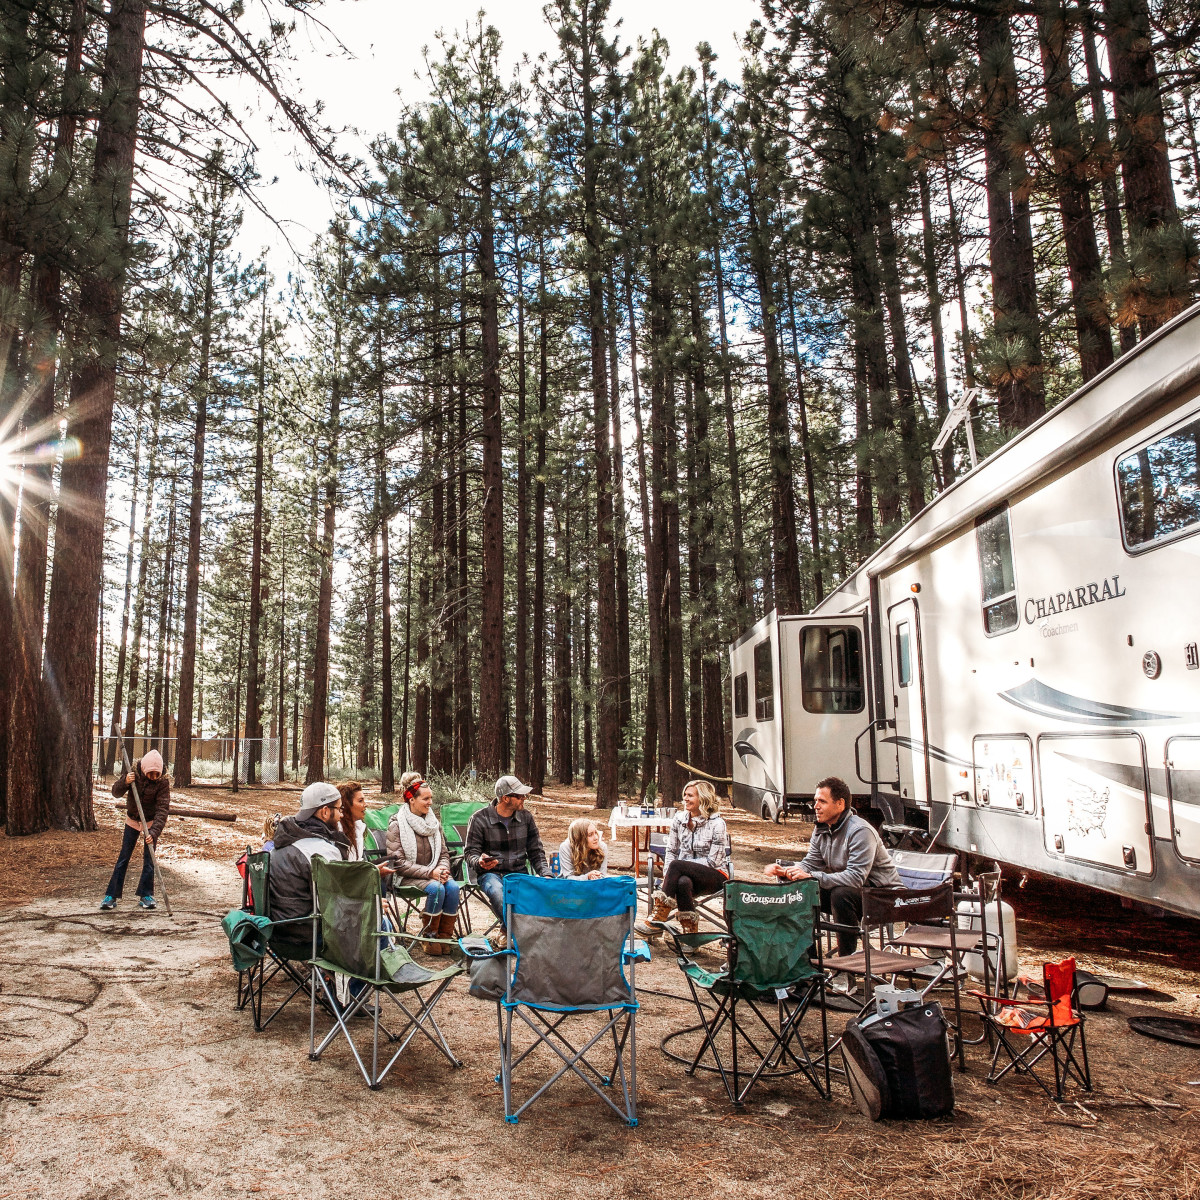 Large group camping with RV